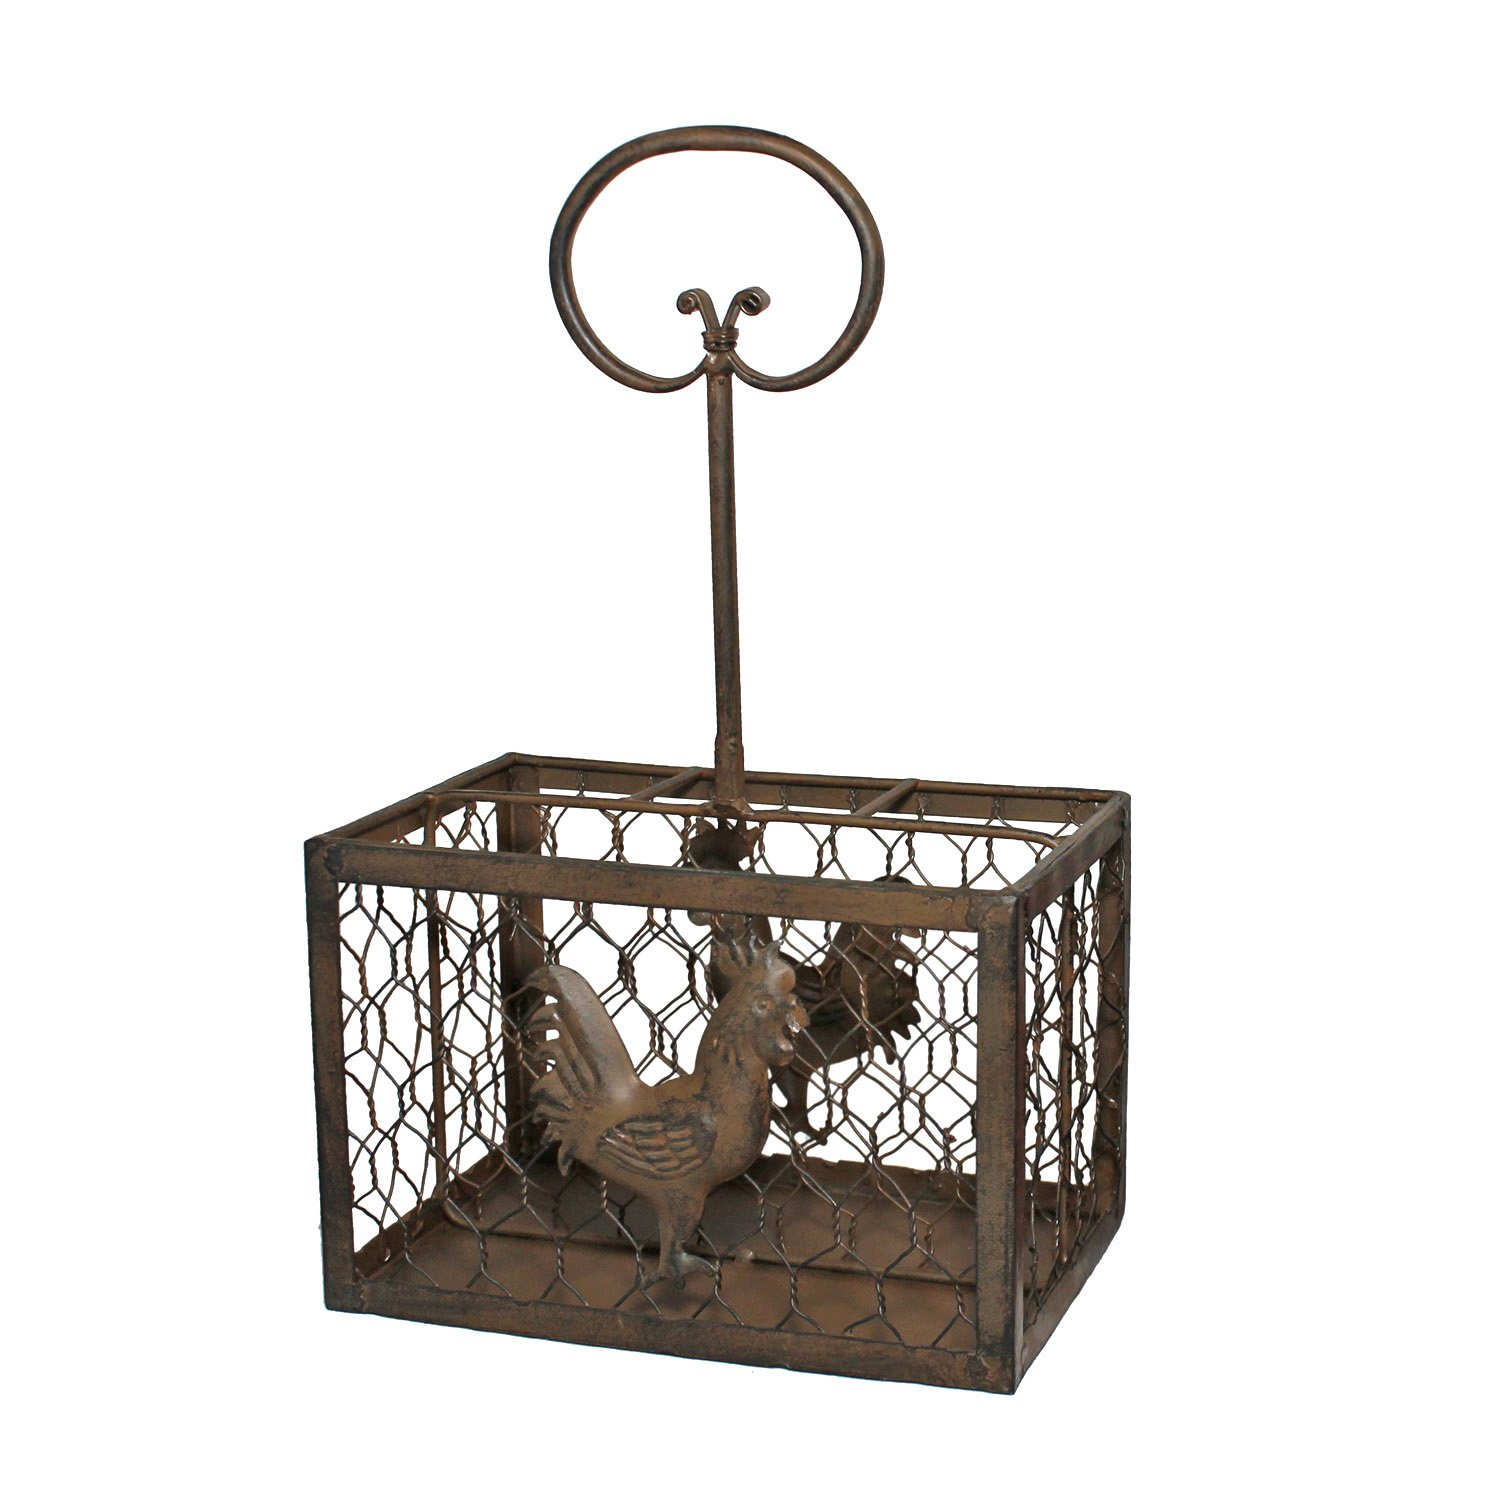 Chicken Wire Utensil Holder with Rooster Accent (Brown)